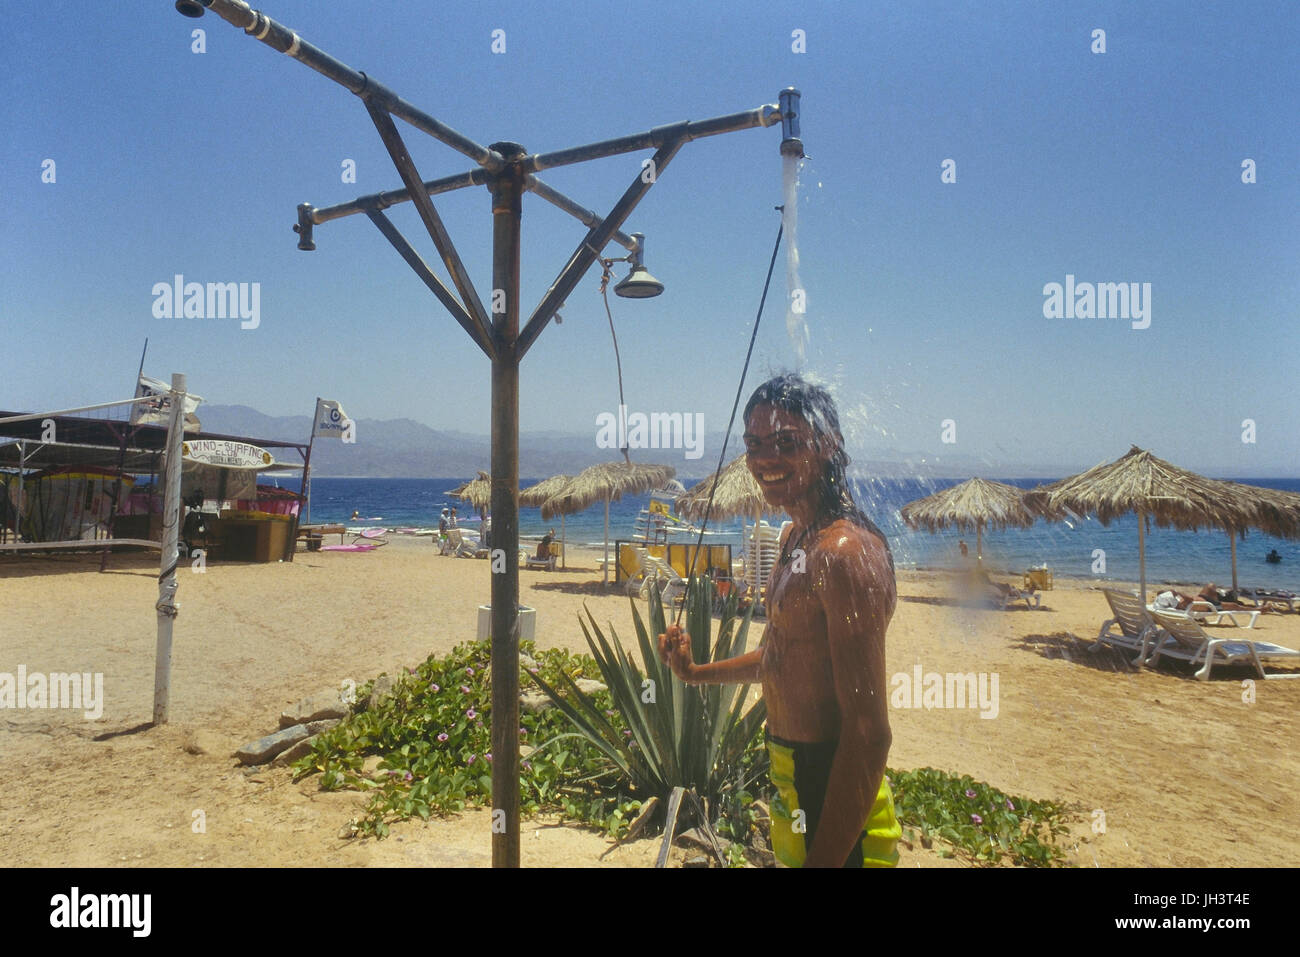 A young man cooling off under a beach shower. Eilat, Israel - Stock Image